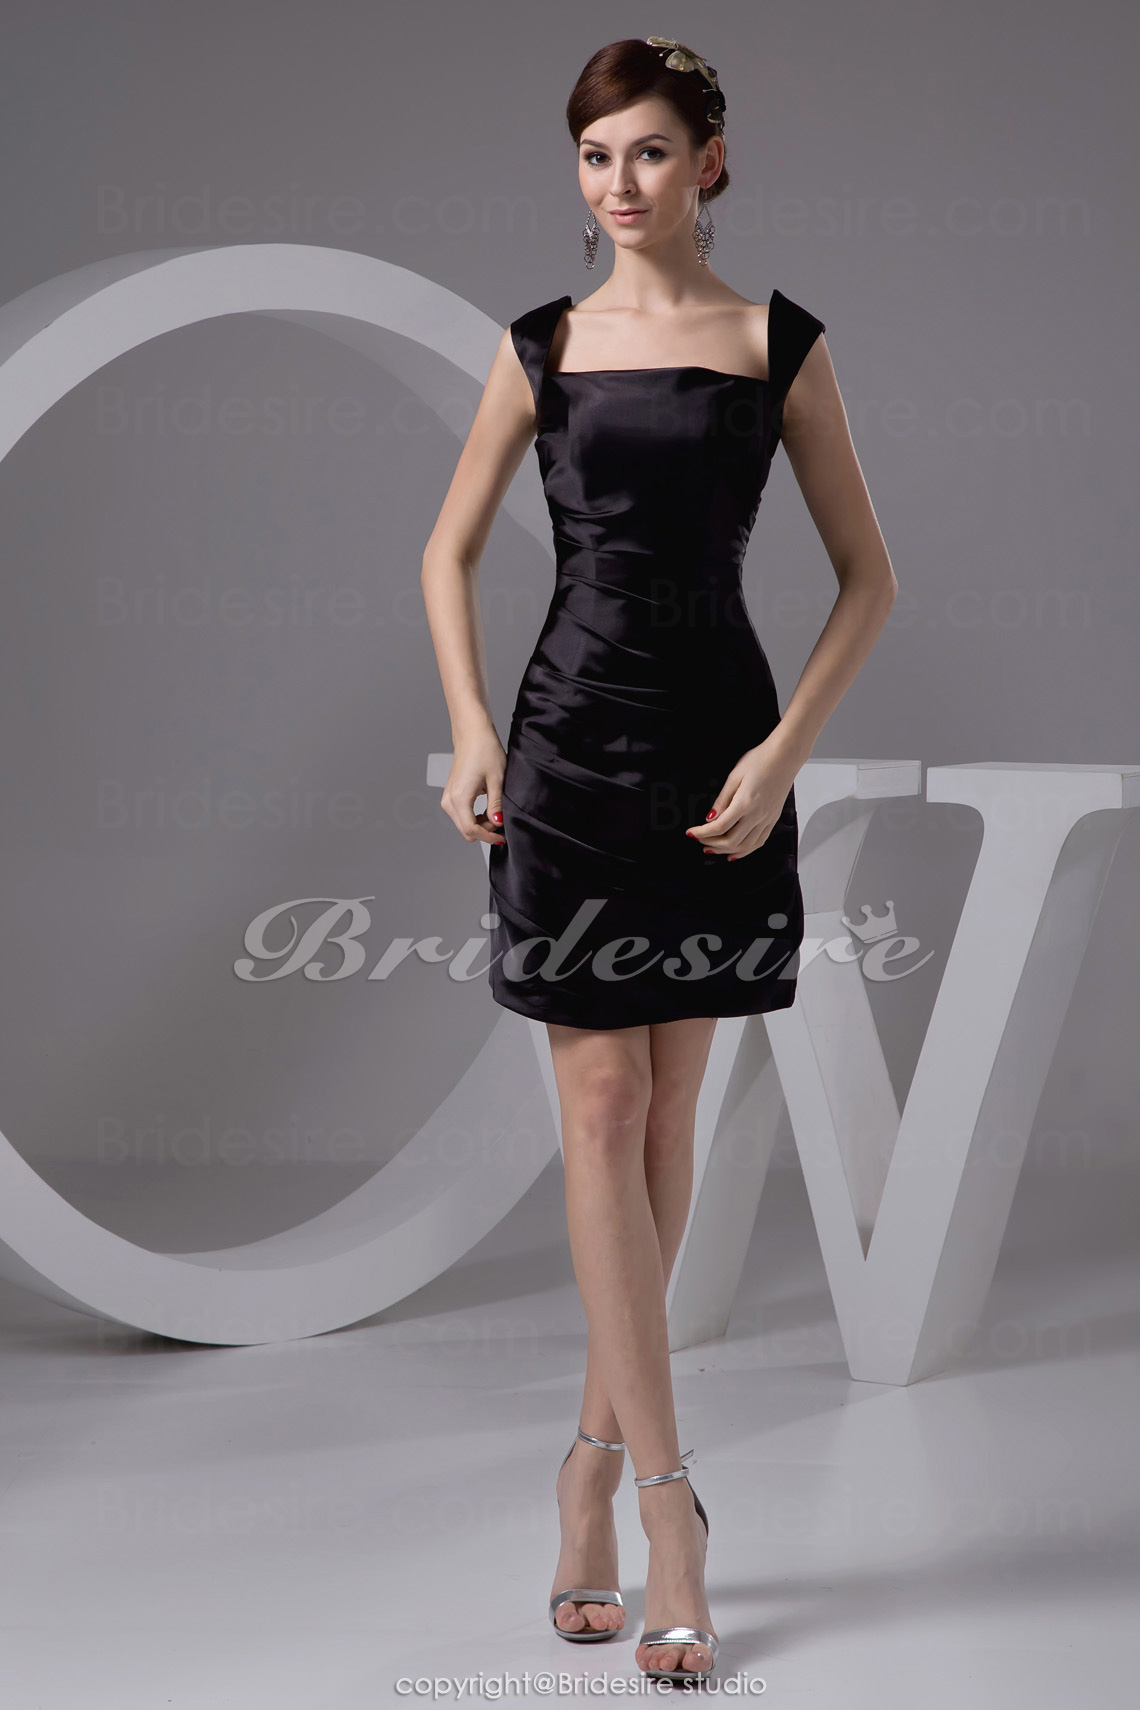 Sheath/Column Straps Short/Mini Sleeveless Stretch Satin Bridesmaid Dress